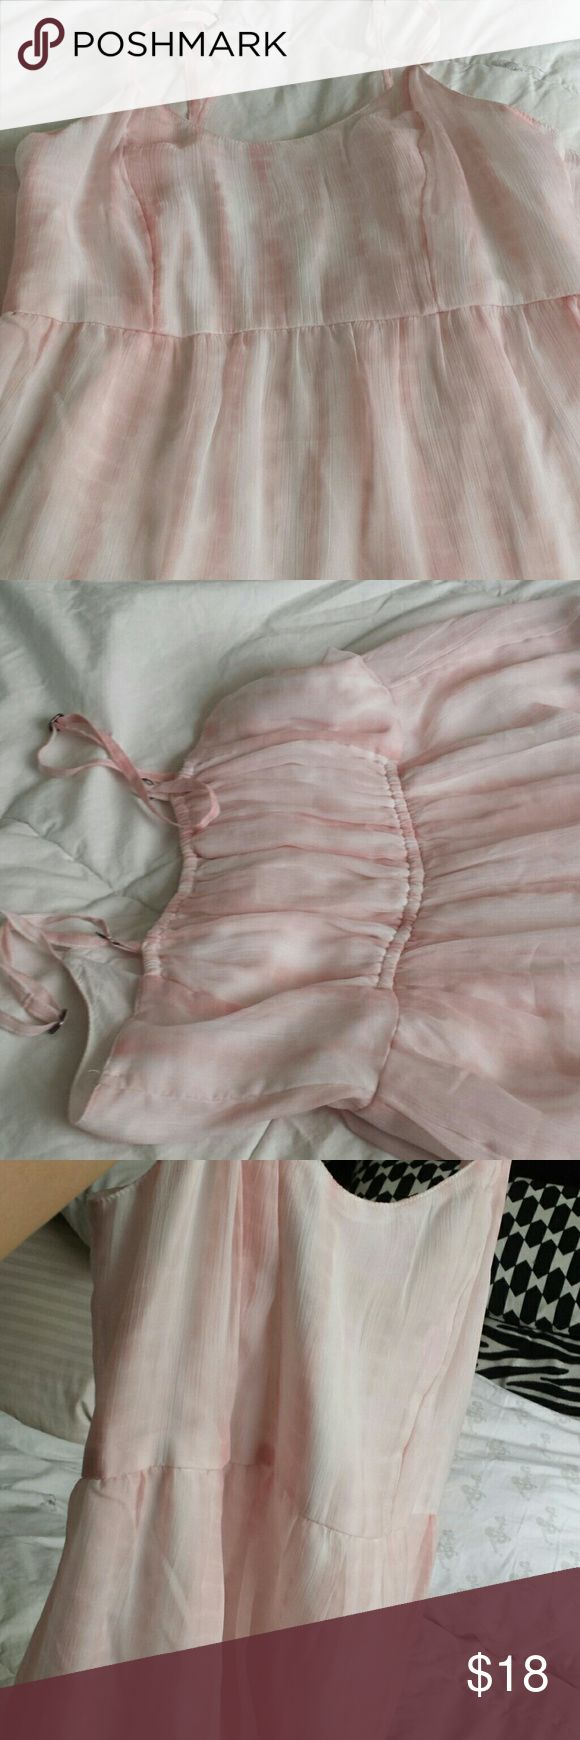 More pics of pink ABERCROMBIE DRESS. Pink Abercrombie dress. ABERCROMBIE  Dresses